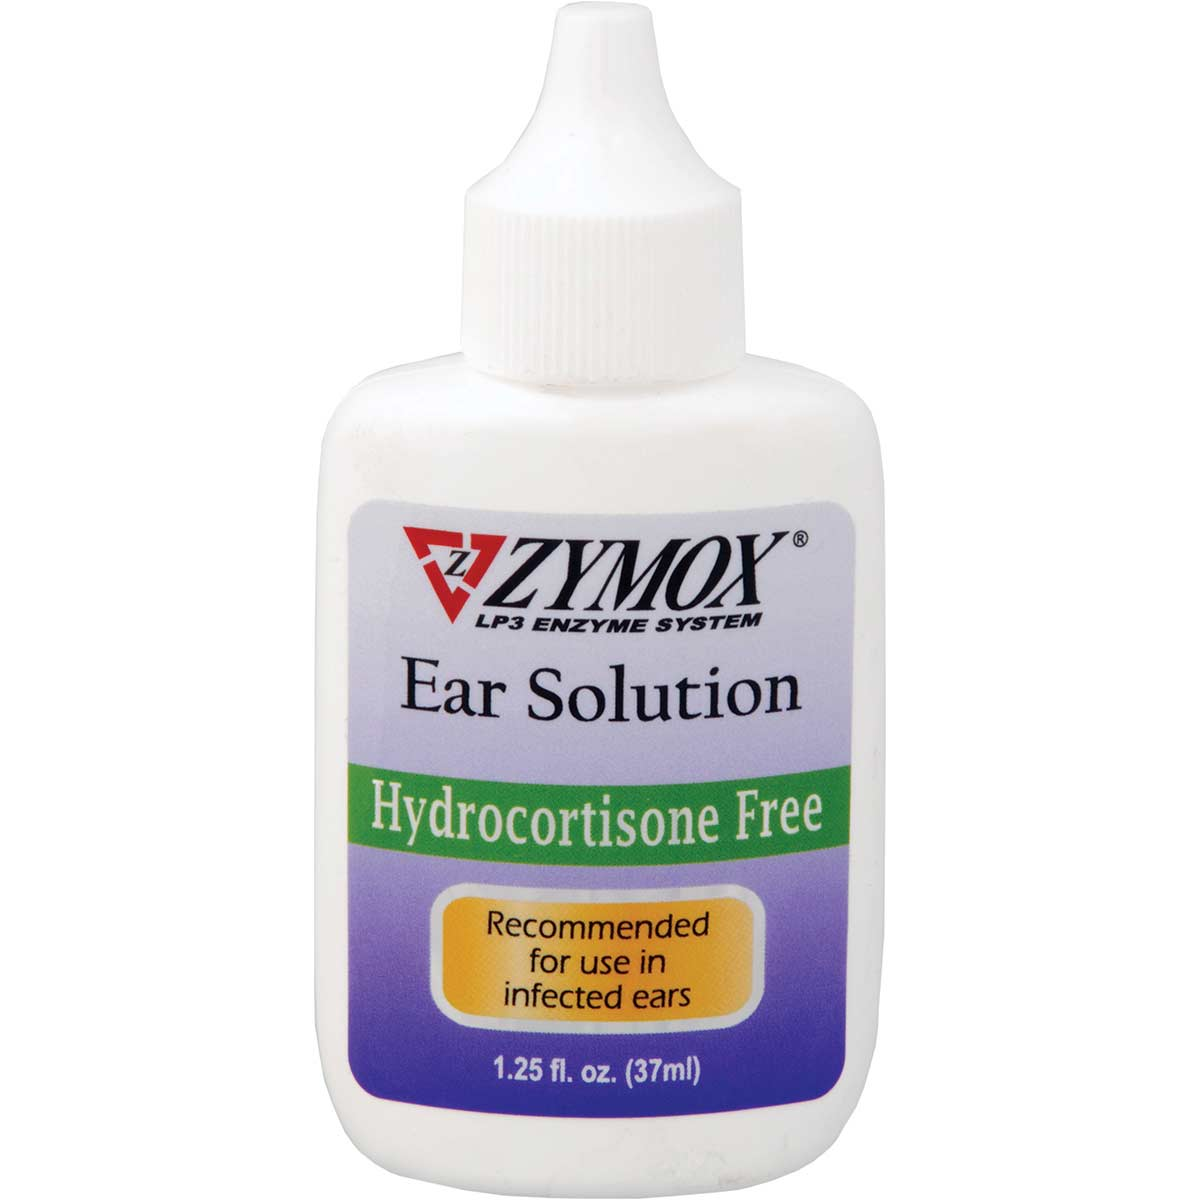 Zymox Inflammation Ear Solution for Dogs Hydrocortisone Free